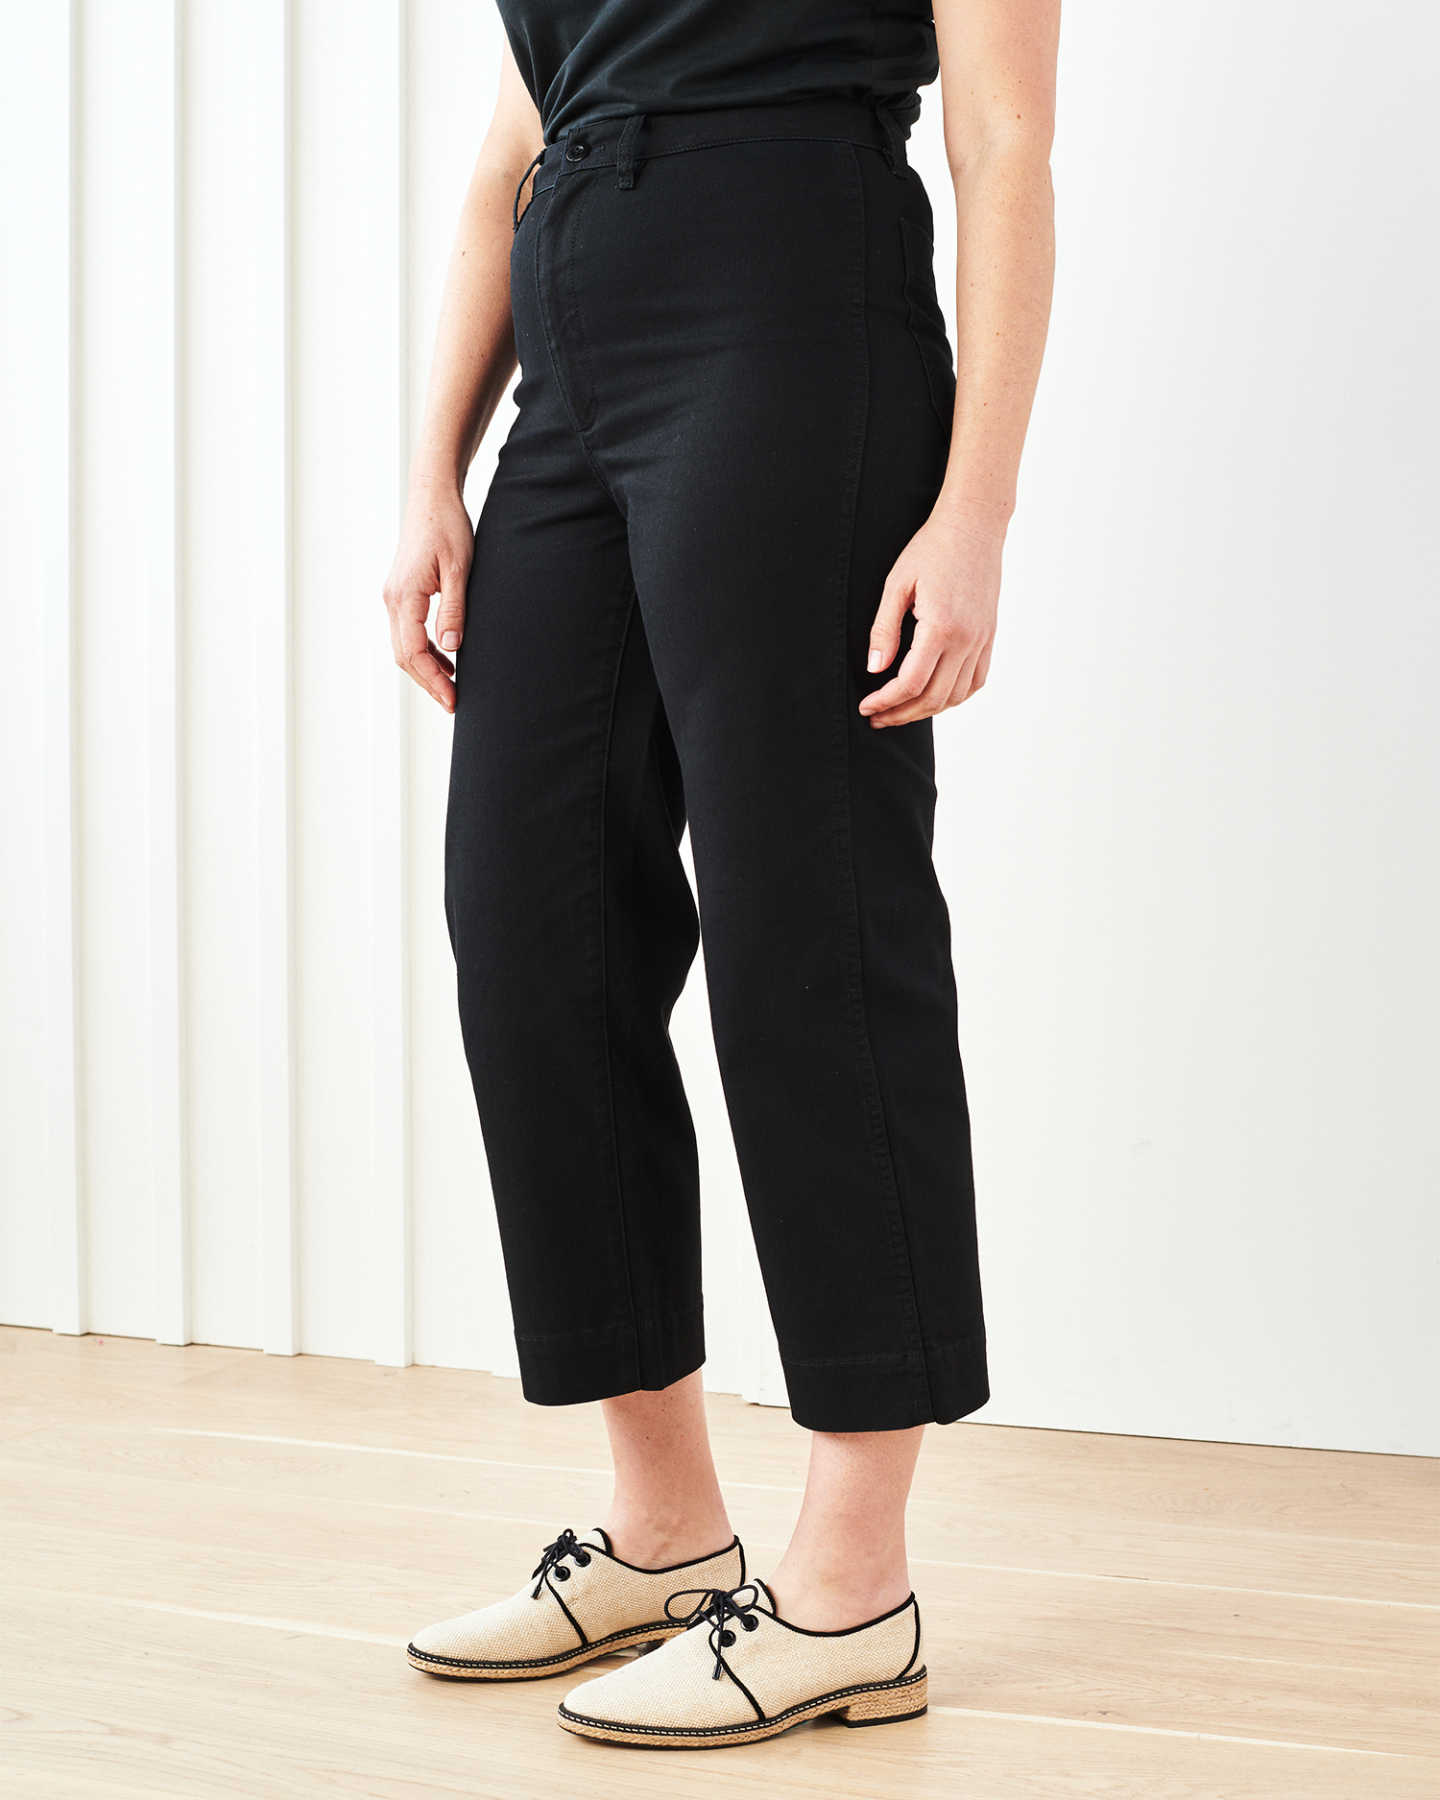 Stretch Cotton Twill Wide-Leg Crop Pant - Black - 10